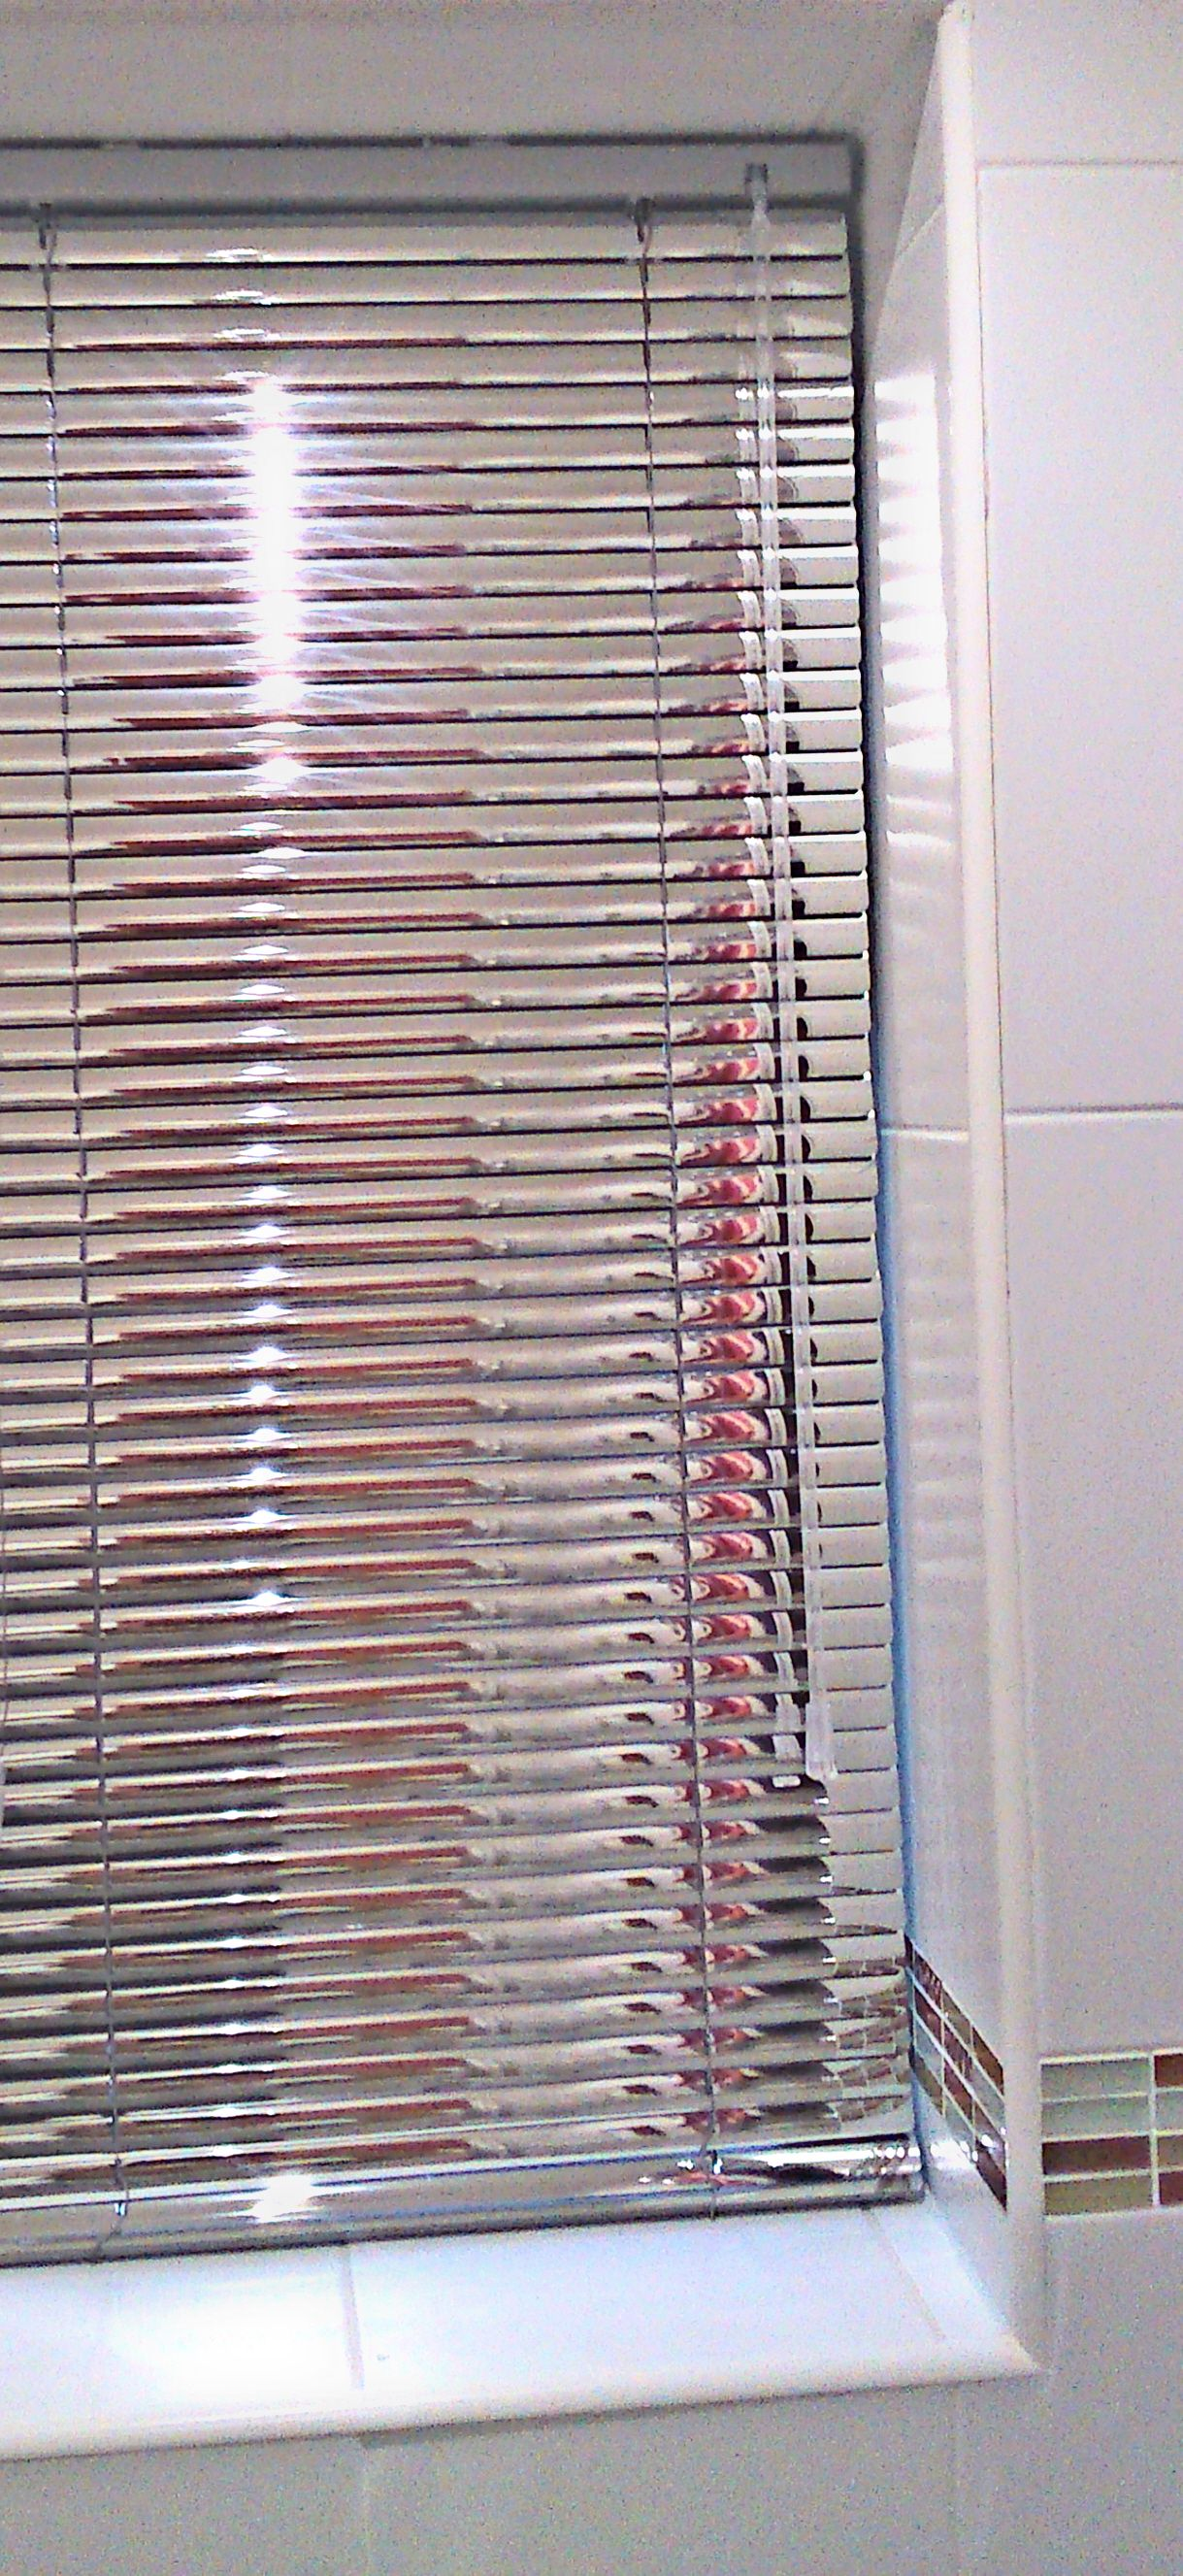 Designer Bathroom Blinds 25 mm venetian blind in a mirrored finish in a modern bathroom